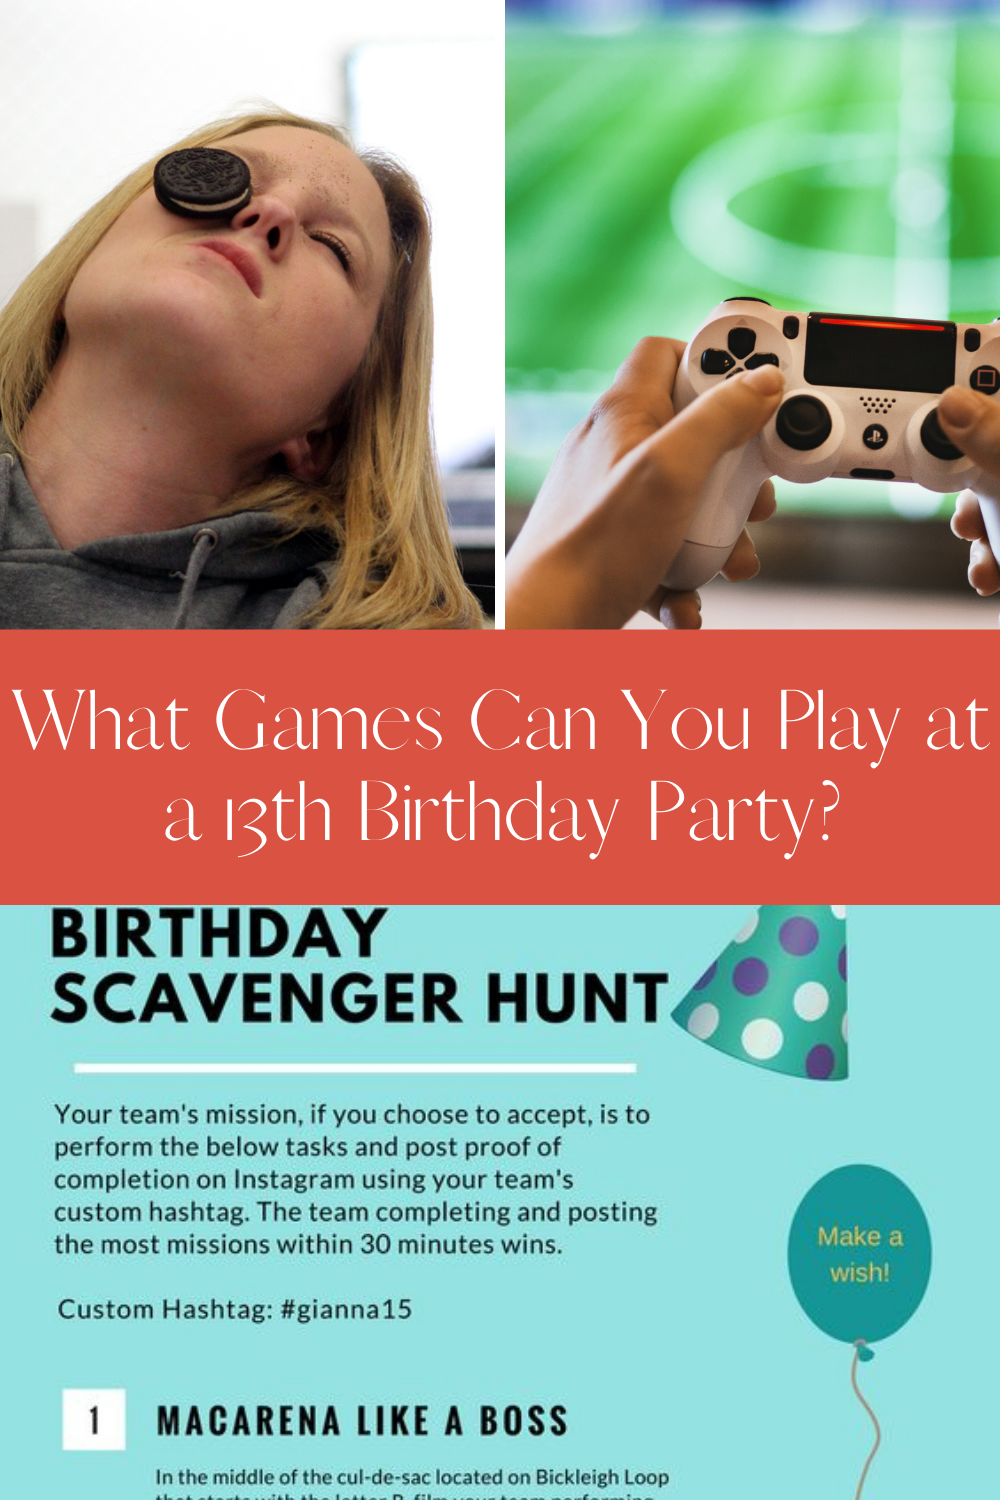 Teen Party Ideas - What can you play at 13th birthday party?